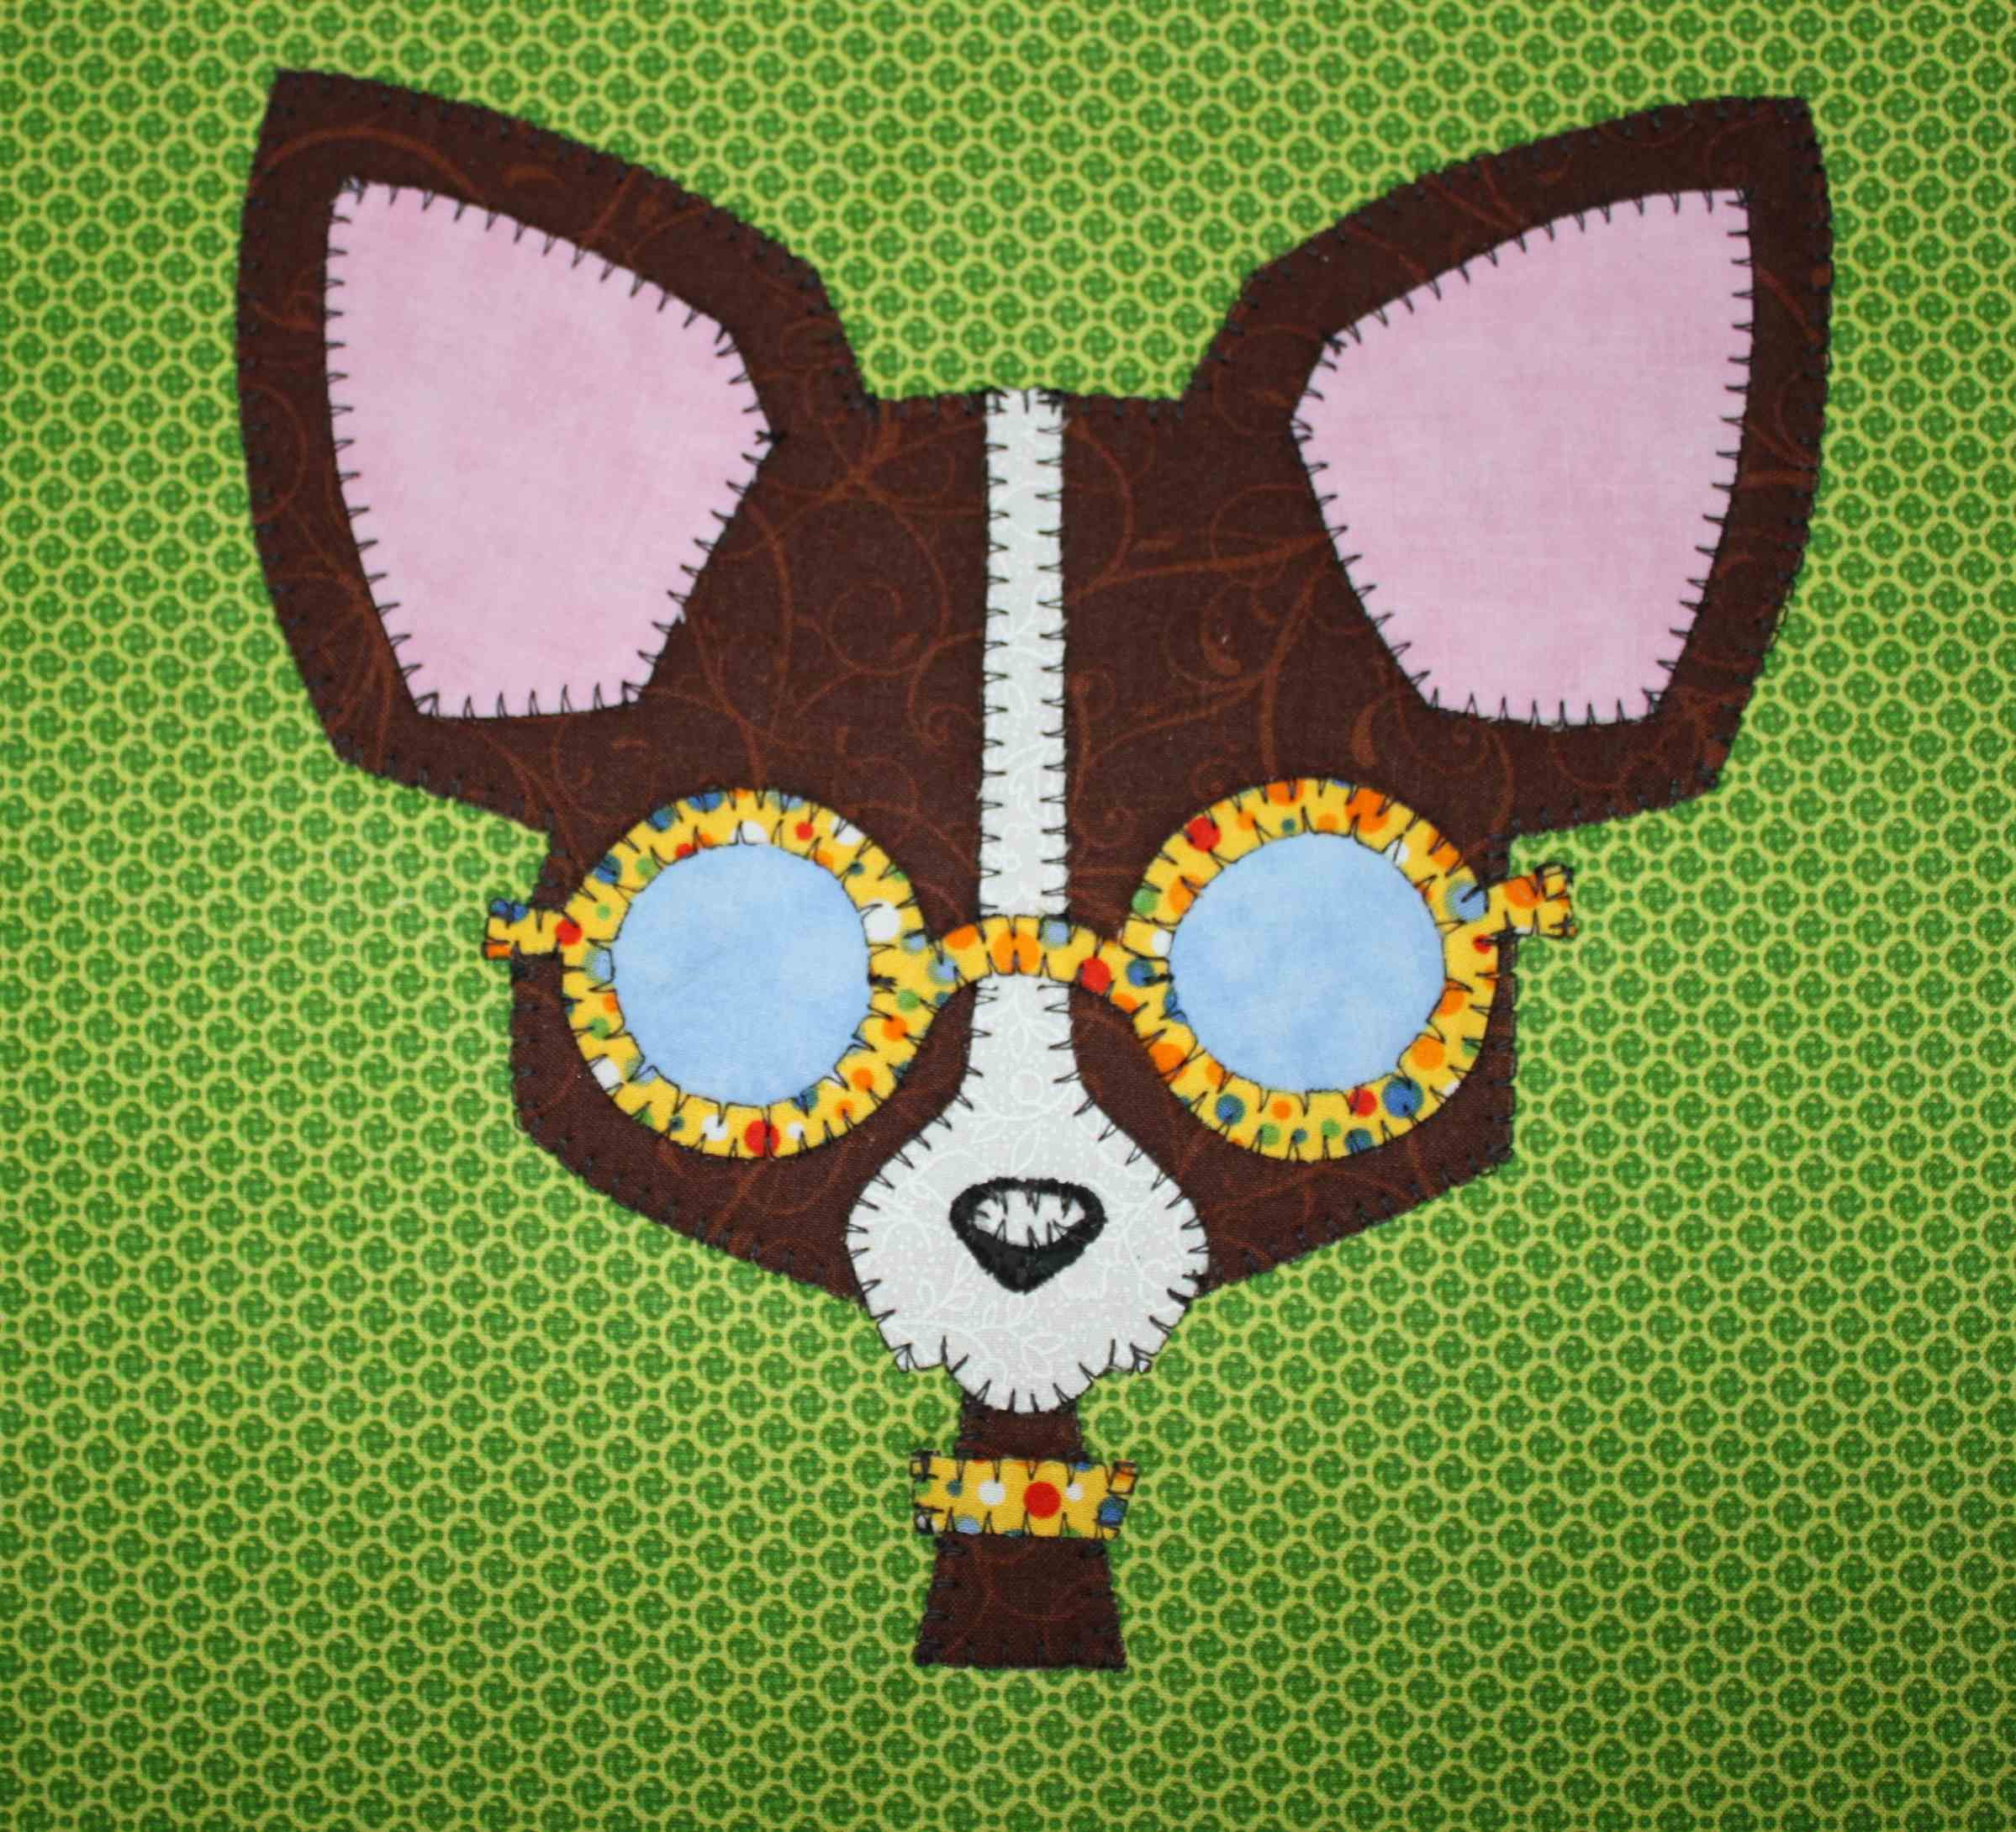 Chihuahua quilted applique wall hanging. Dog quilt. | Quilts - Dogs ...